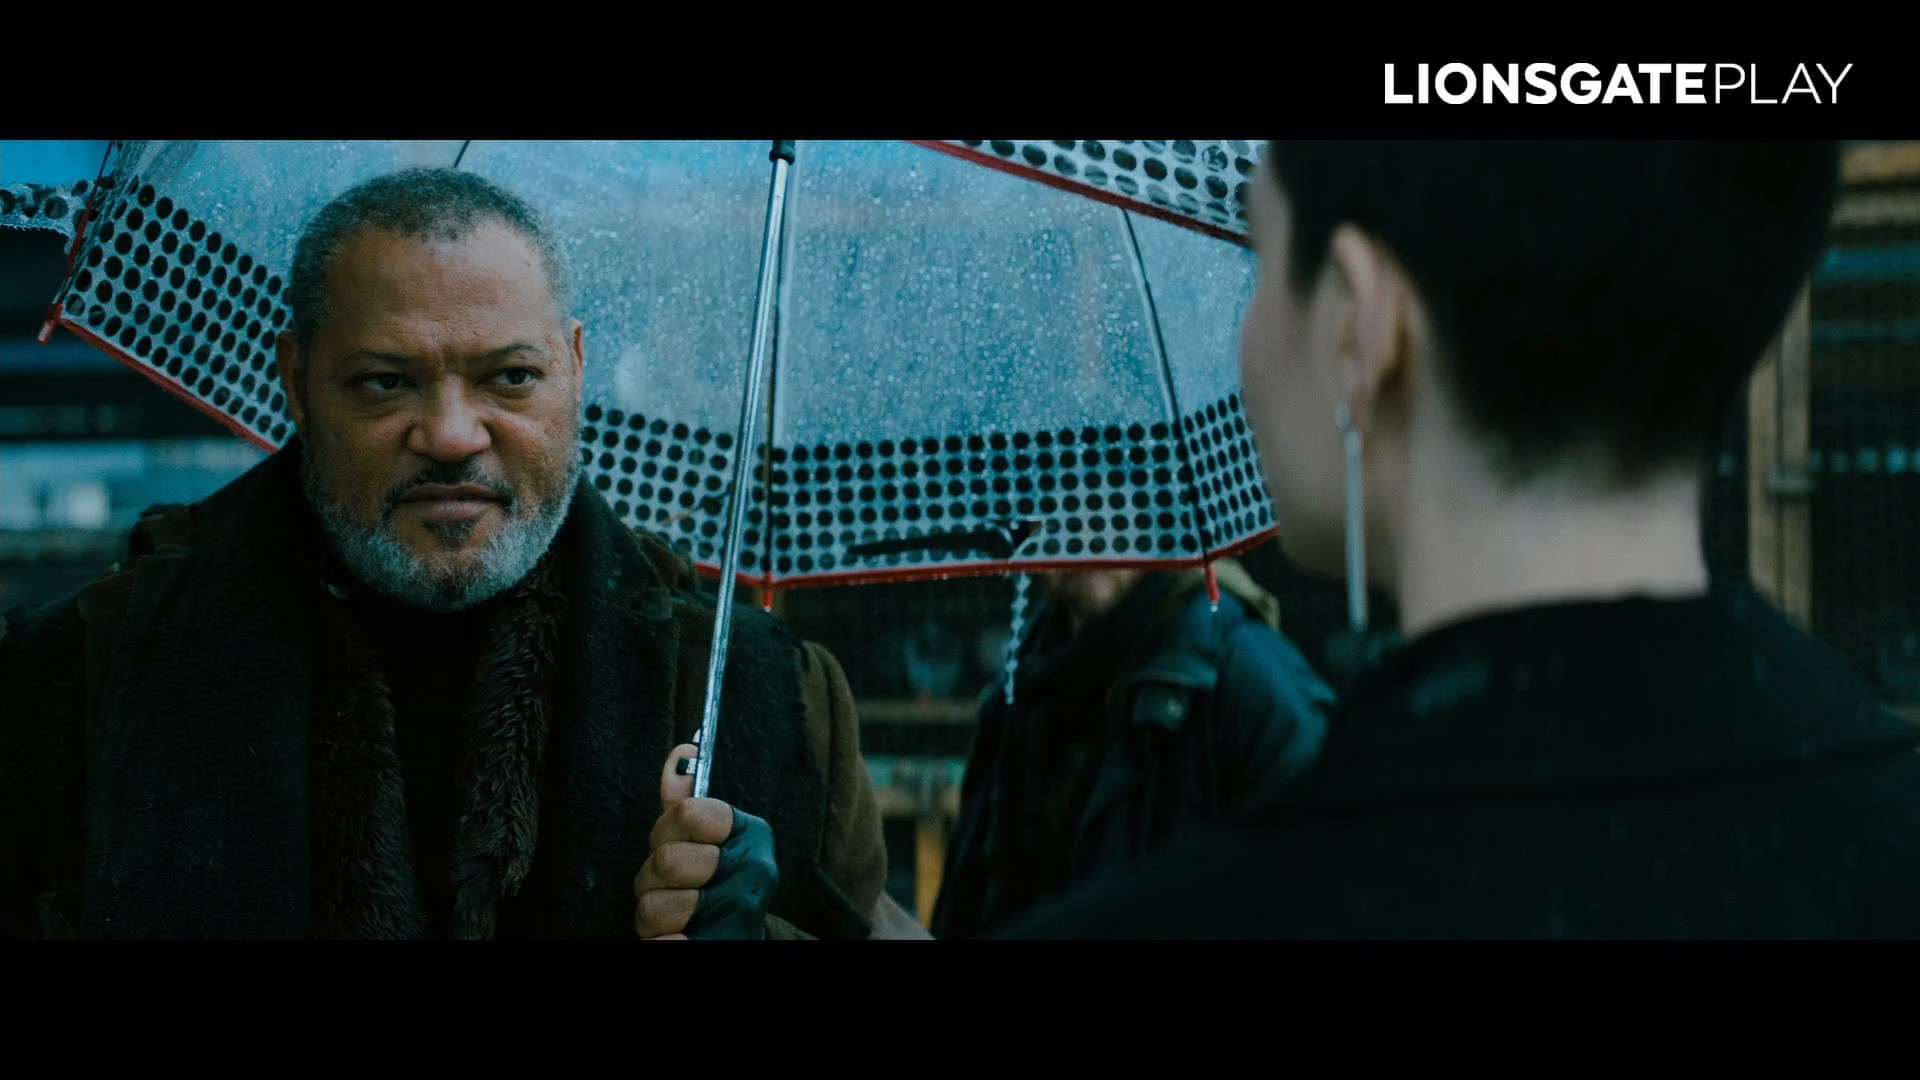 John.Wick.2019.1080p.LionsGate.Play.WEB-DL.HIN-Telly1.mkv_snapshot_00.35.30_2020.04.10_19.55.53445cd.jpg